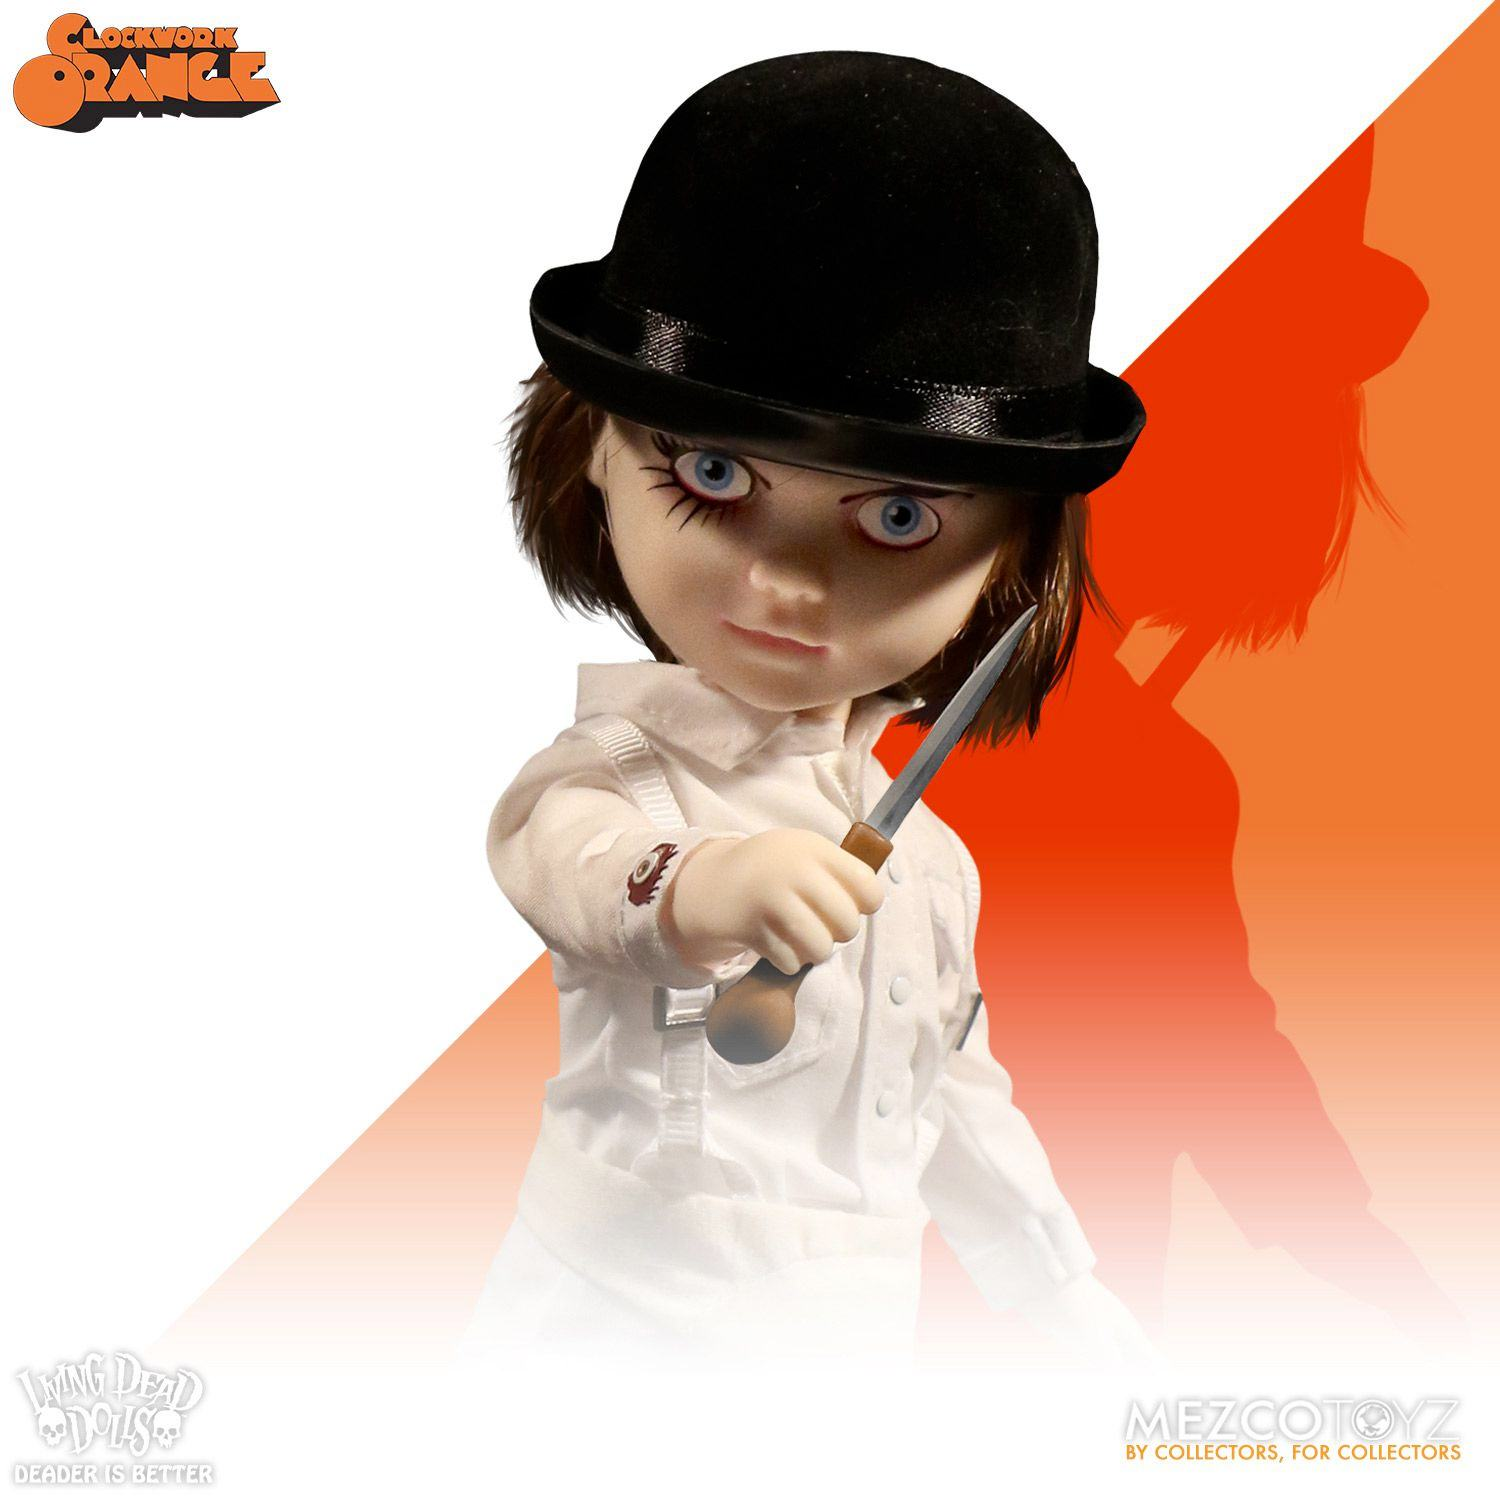 Living-Dead-Dolls-Presents-Clockwork-Orange-Laranja-Mecanica-02